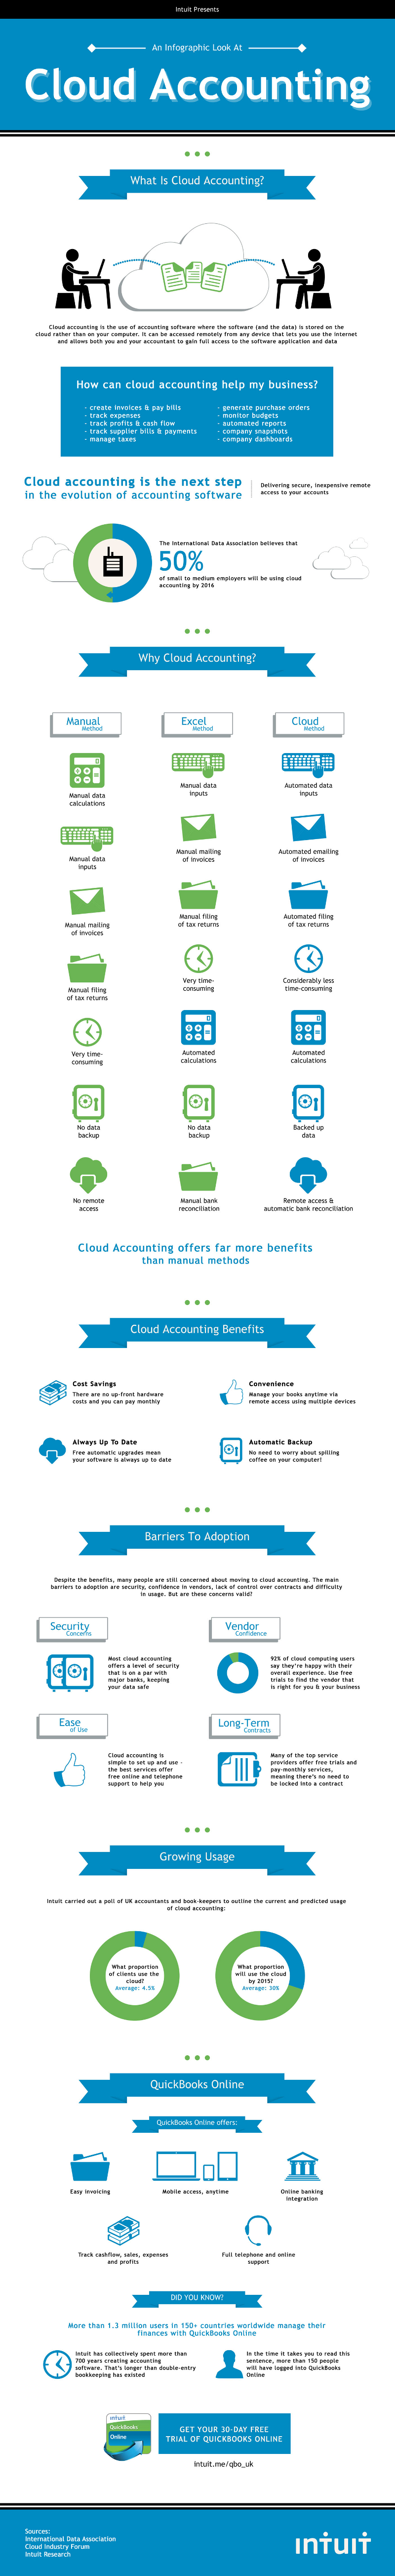 Benefits to Cloud Accounting